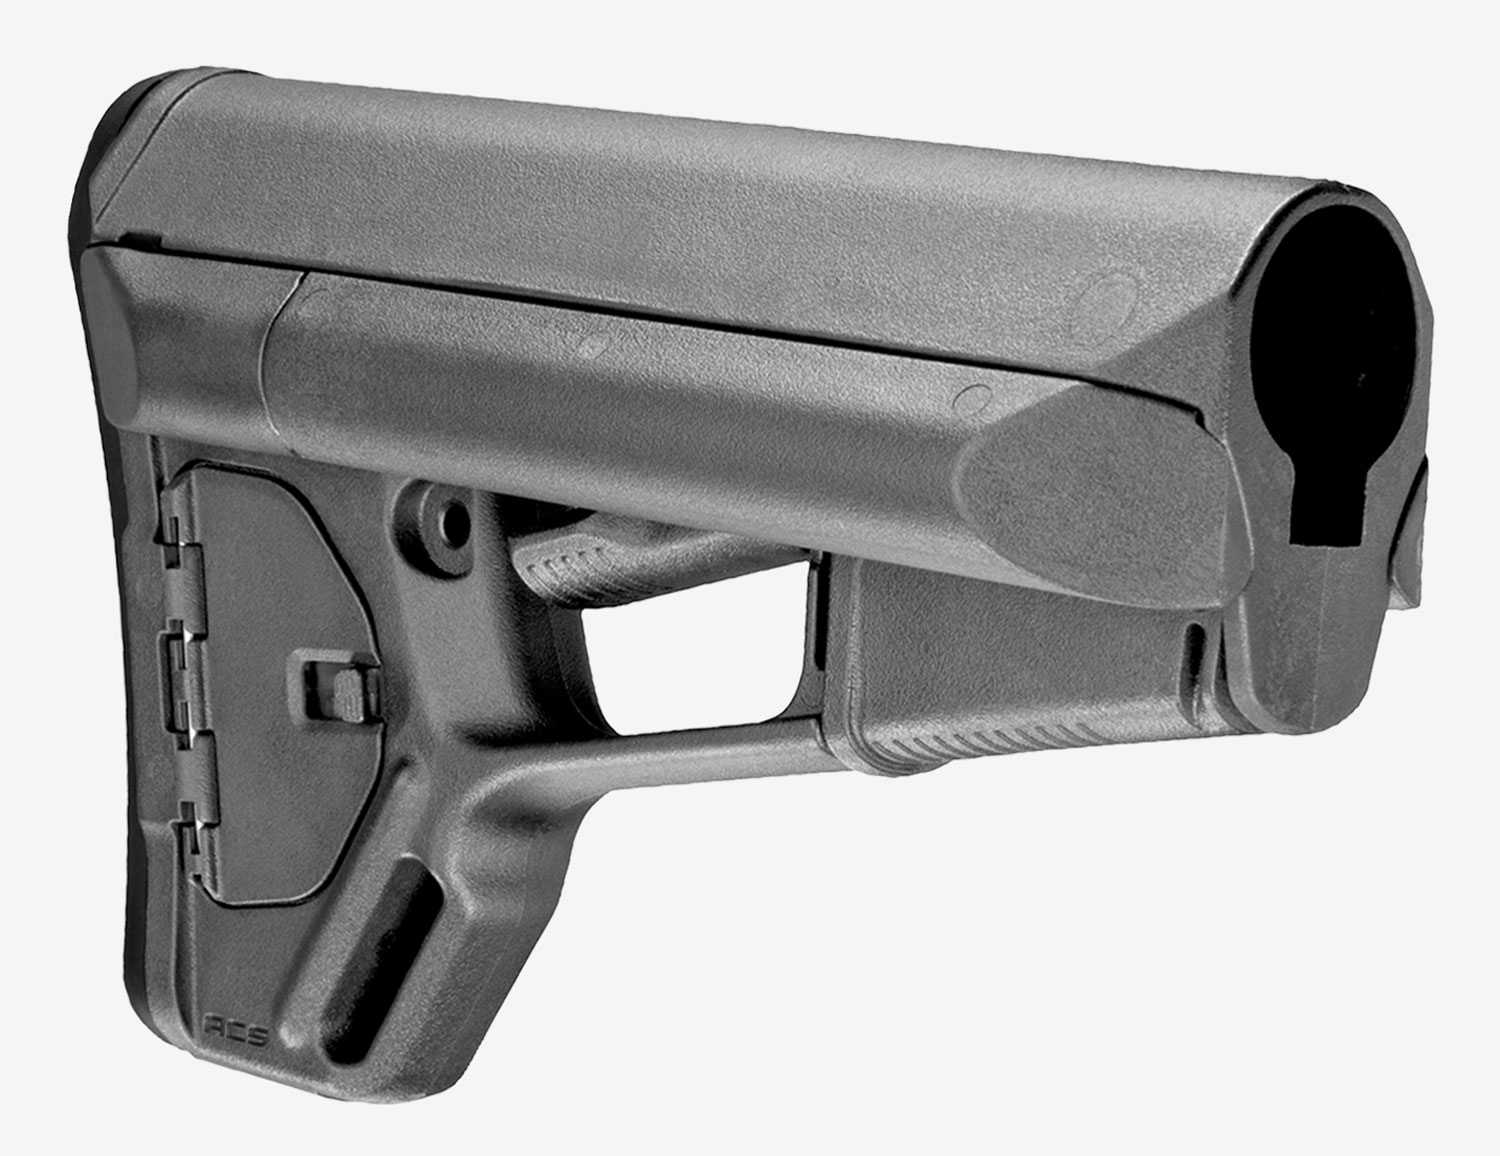 Magpul MAG370-GRY ACS Carbine Stock Stealth Gray Synthetic for AR-15, M16, M4 Mil-Spec Tube (Tube Not Included)